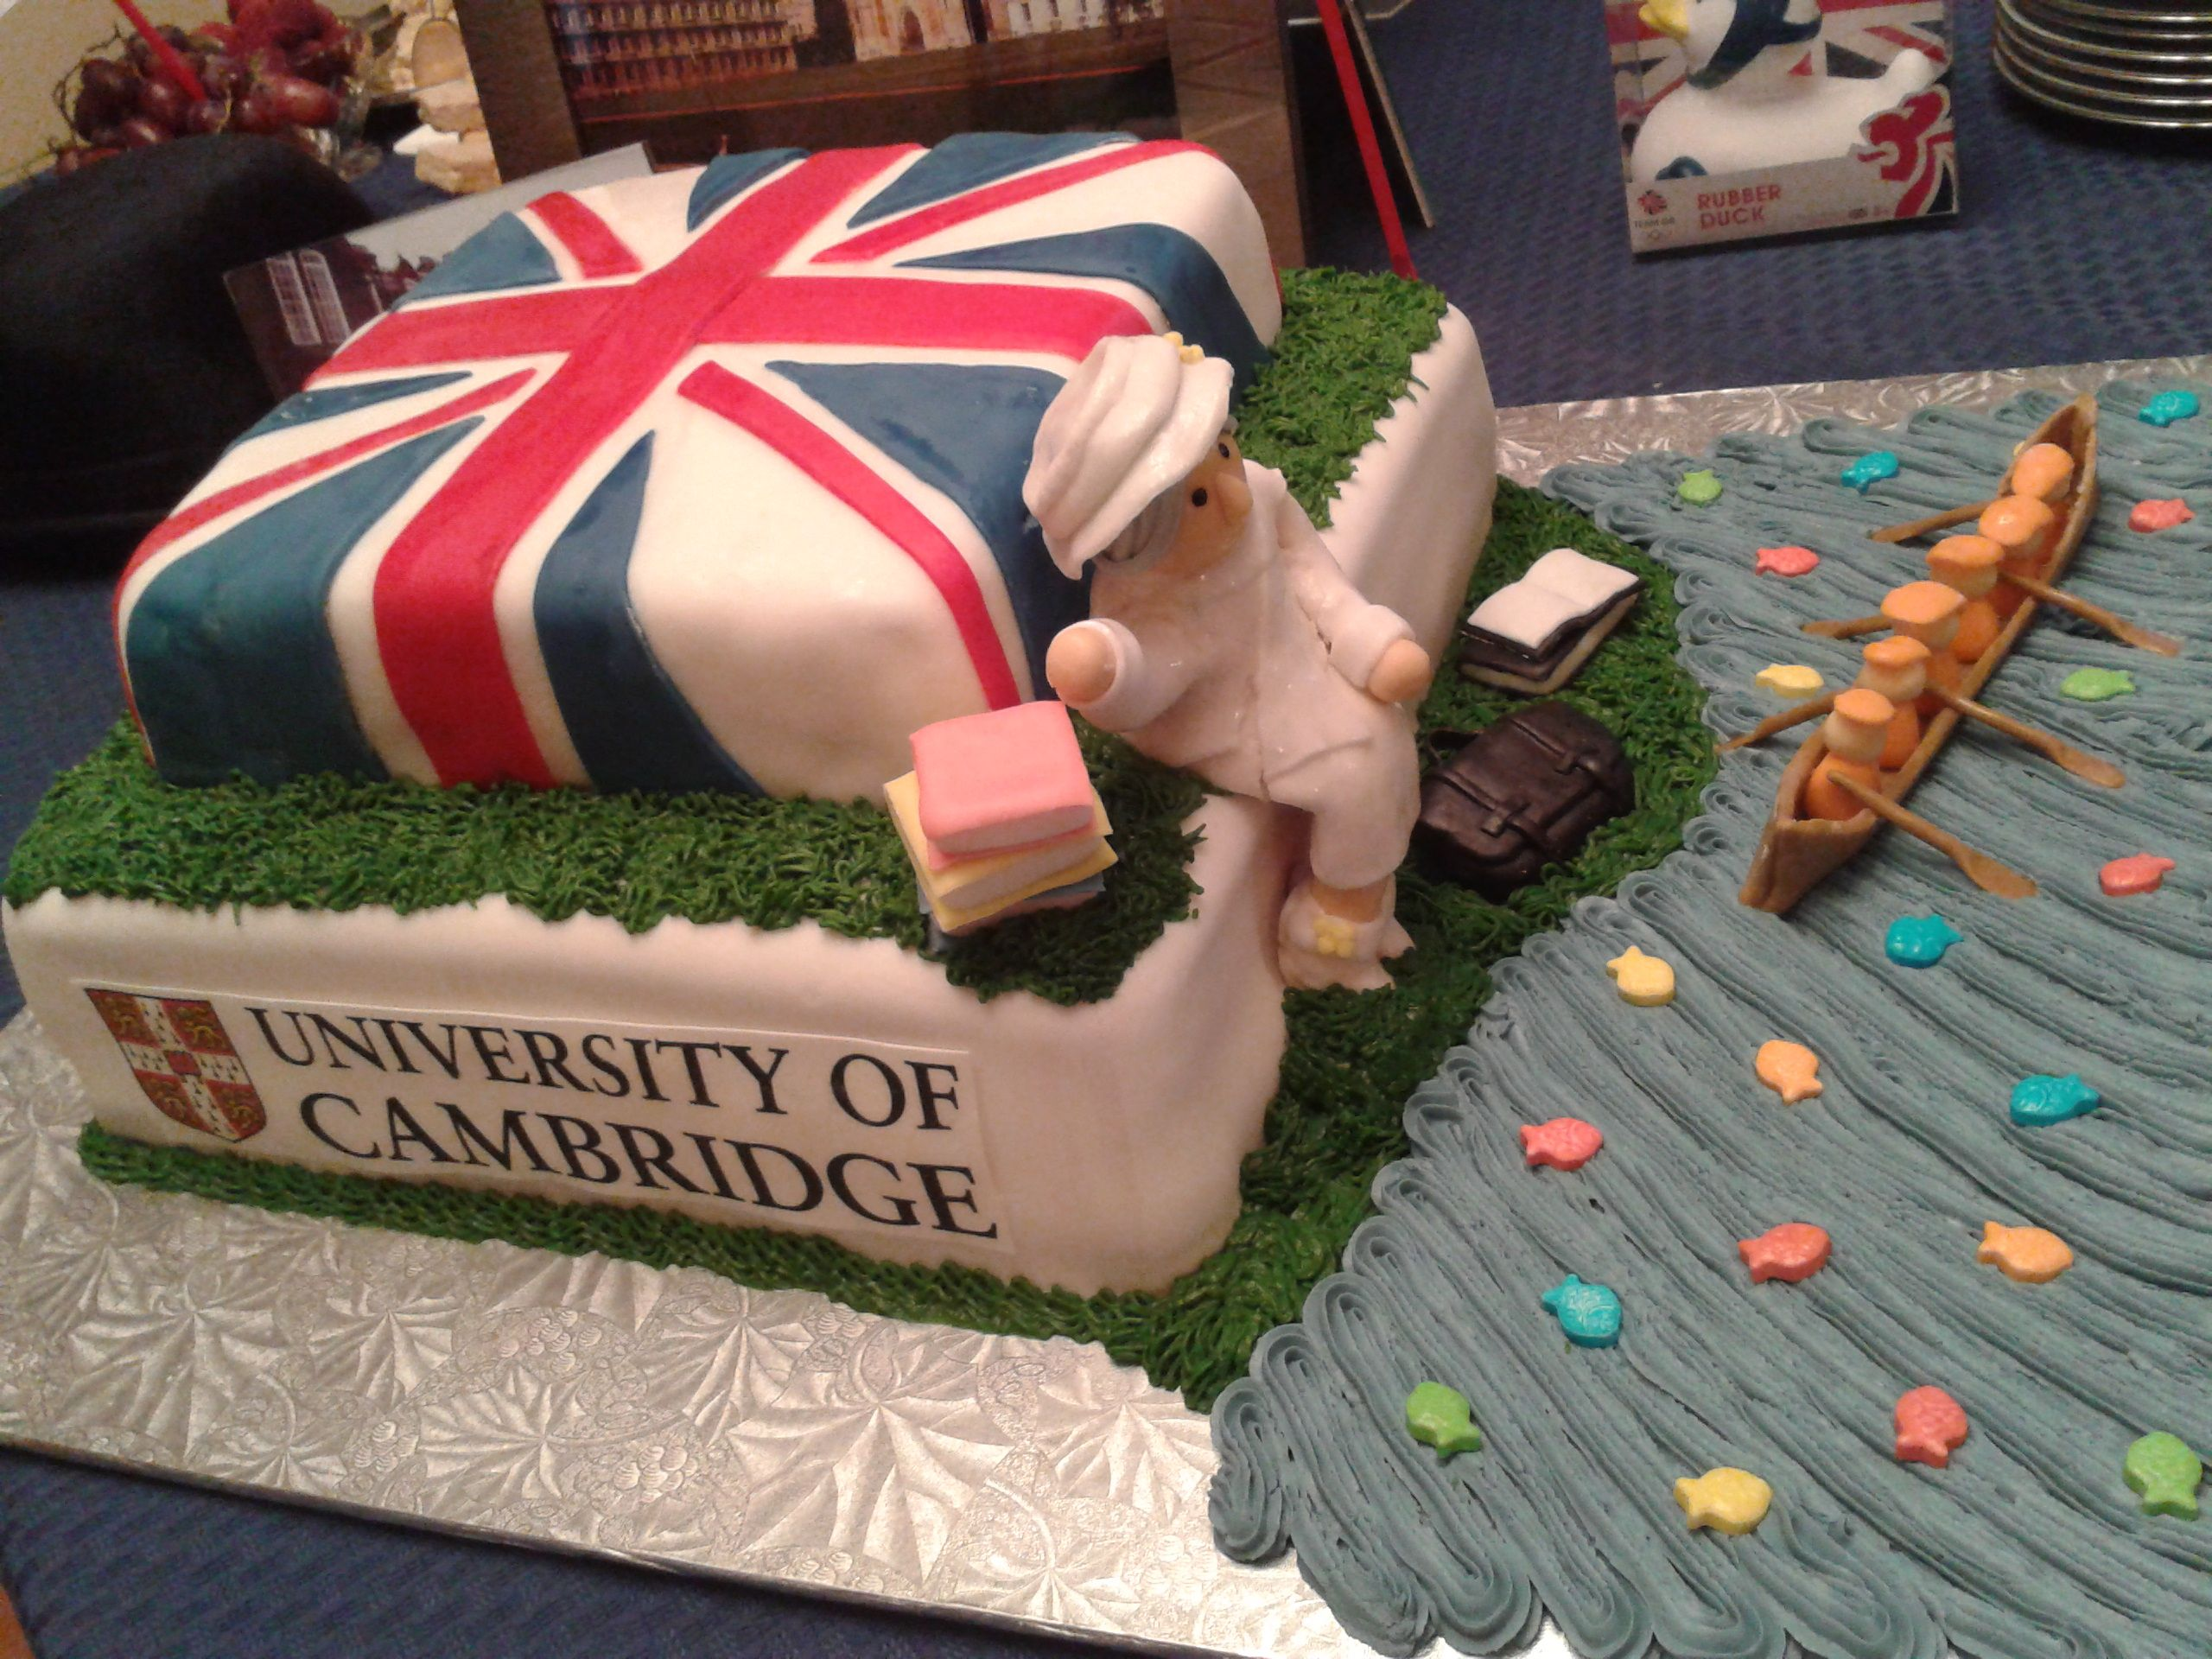 Uk Cake Complete With One Of The Buildings From The